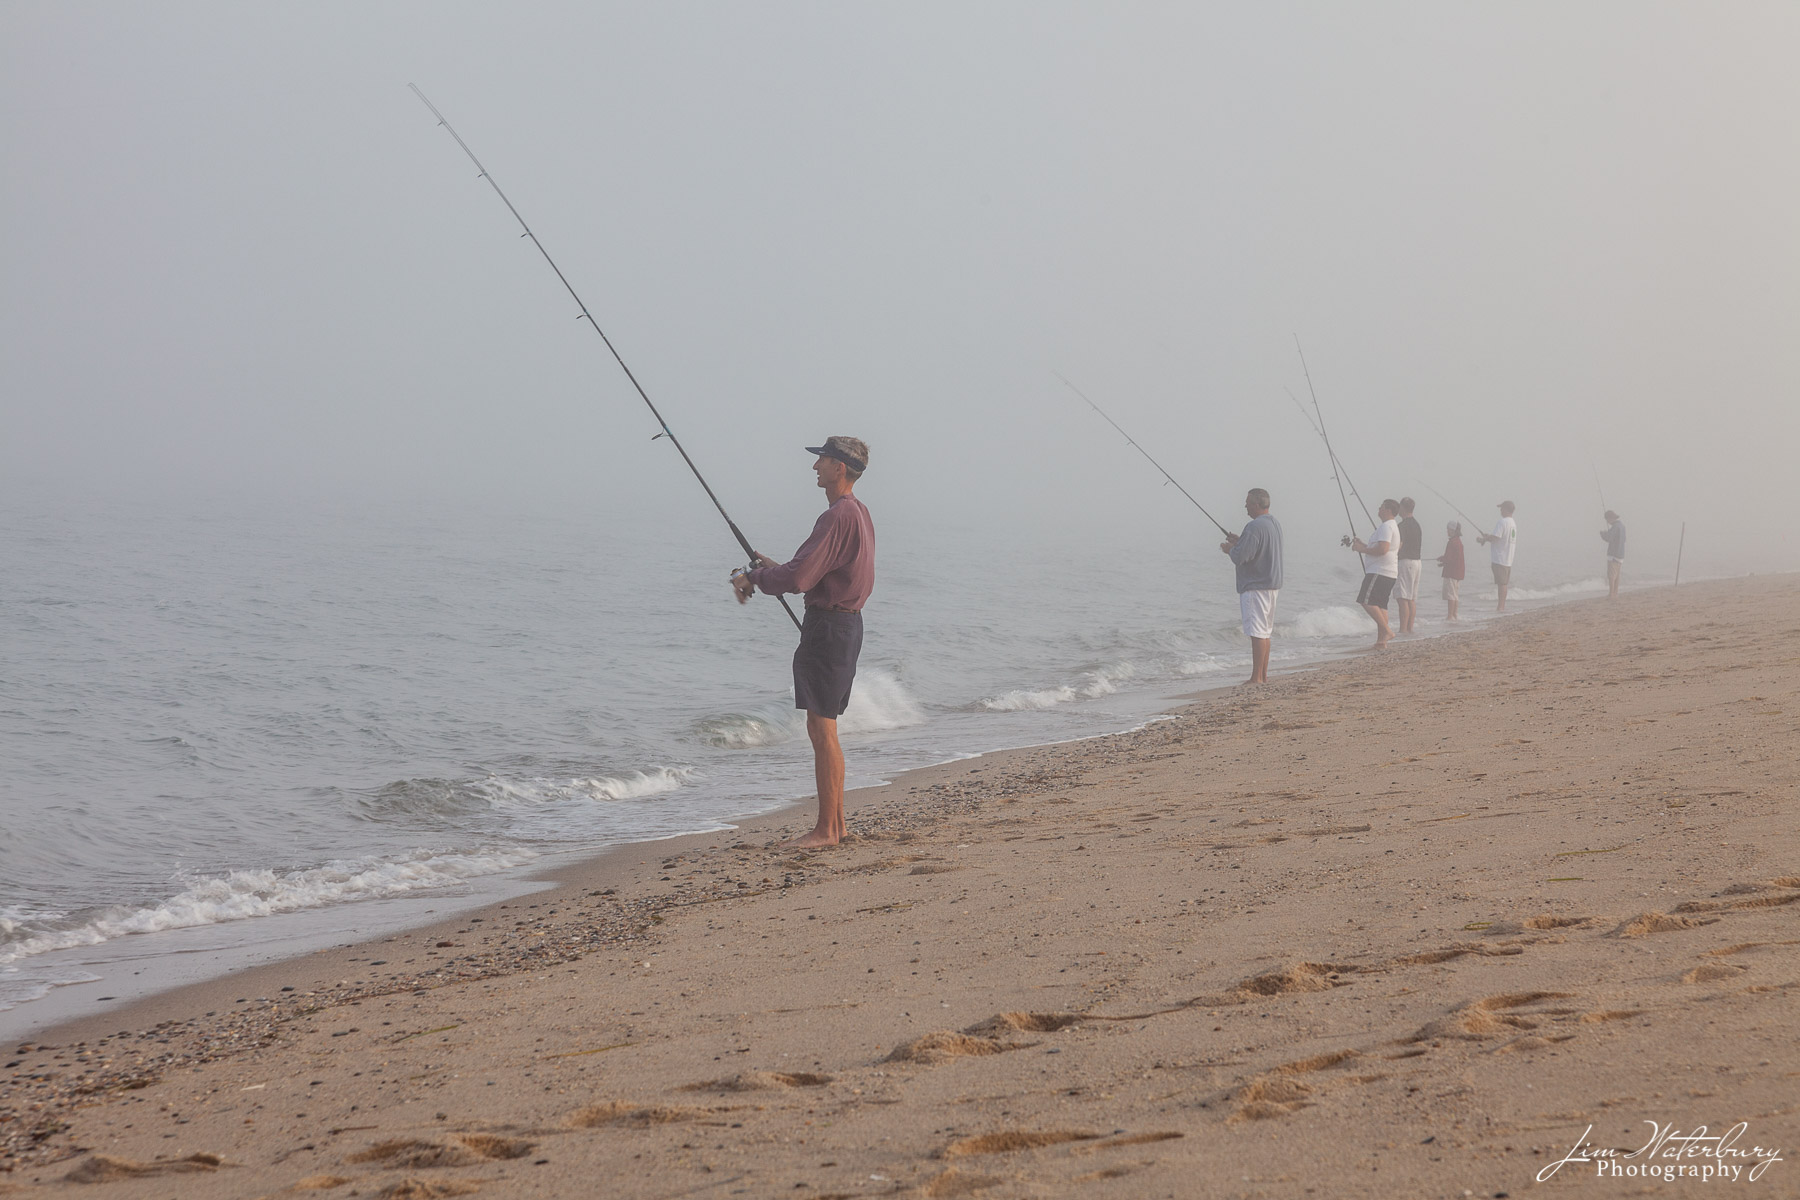 Fishermen surfcasting off the beach on Nantucket in the early morning fog.